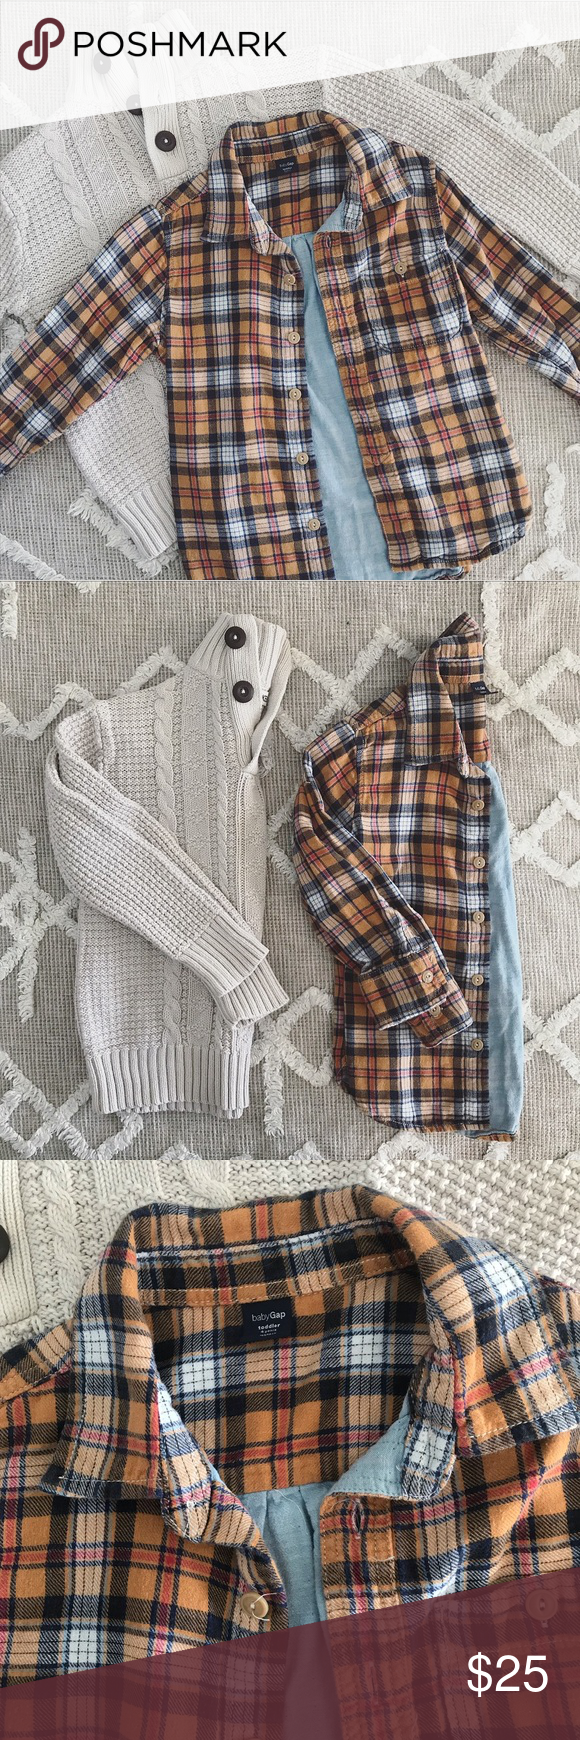 249672822 Boys Flannel Shirt & Pullover Sweater Bundle EUC Baby Gap plaid flannel  shirt with chambray lining